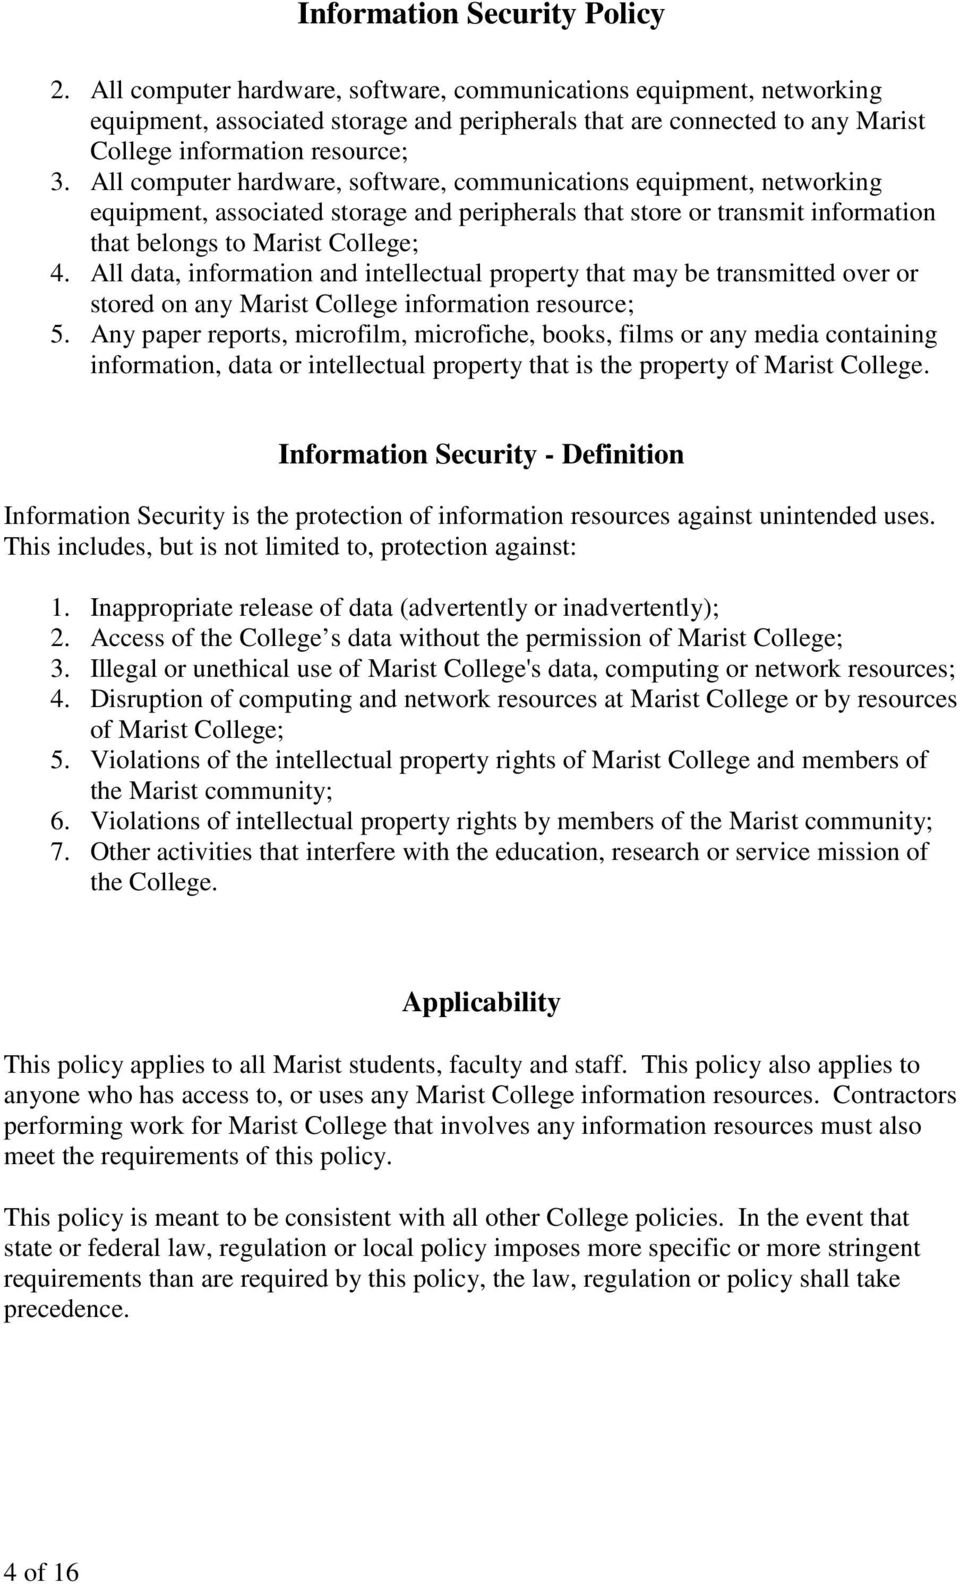 All data, information and intellectual property that may be transmitted over or stored on any Marist College information resource; 5.